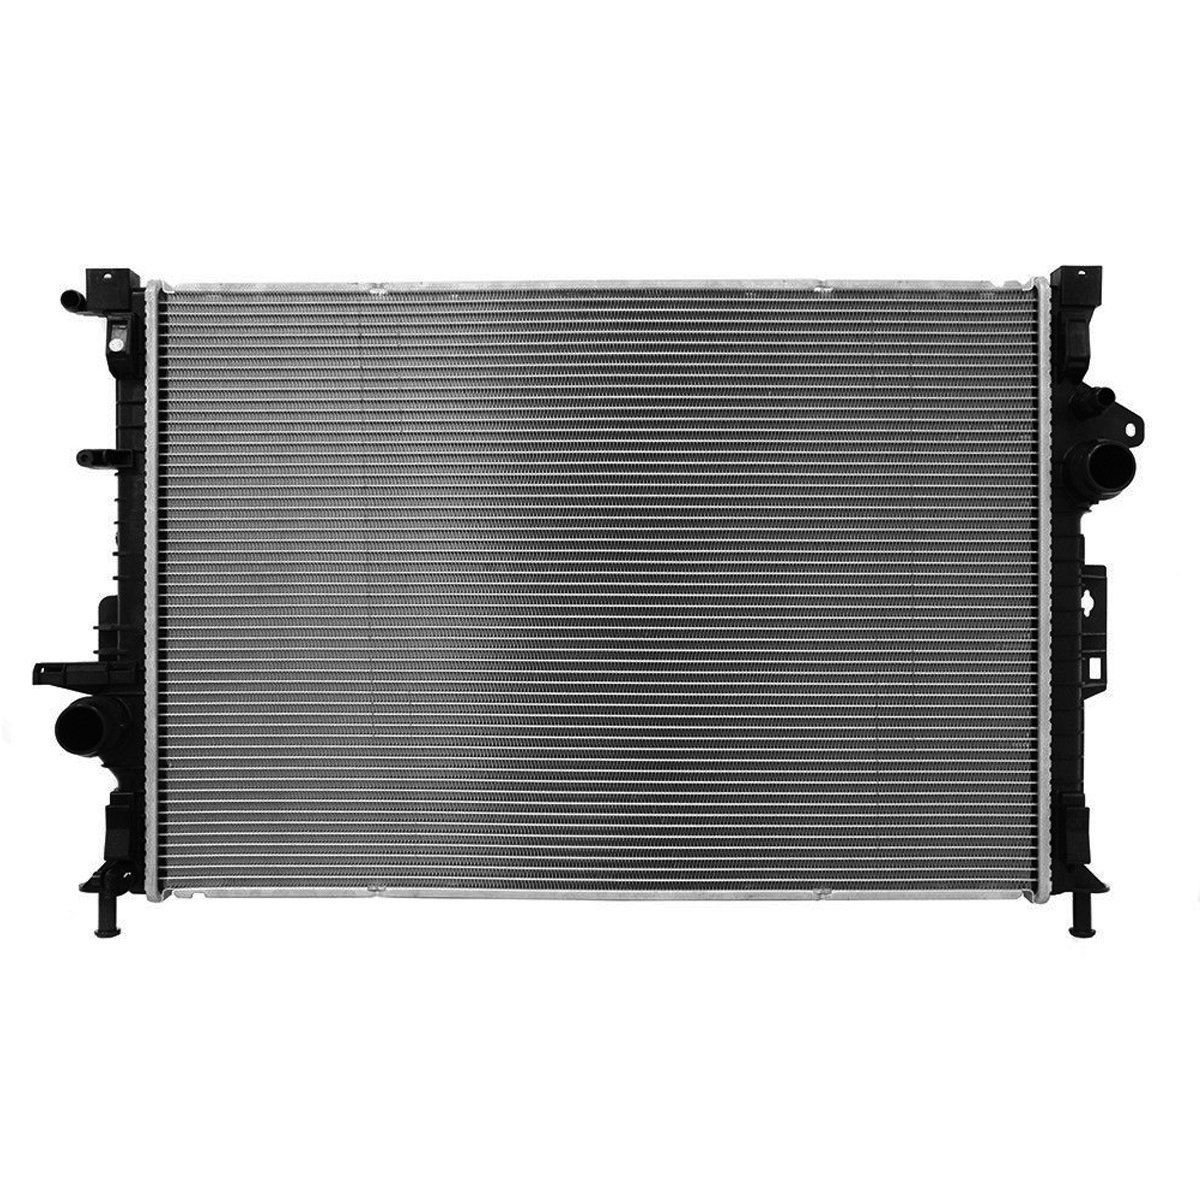 SCITOO Radiator 13313 fit Ford Escape/Transit 1.6L 2.0L 2.5L 2013-2017 by SCITOO